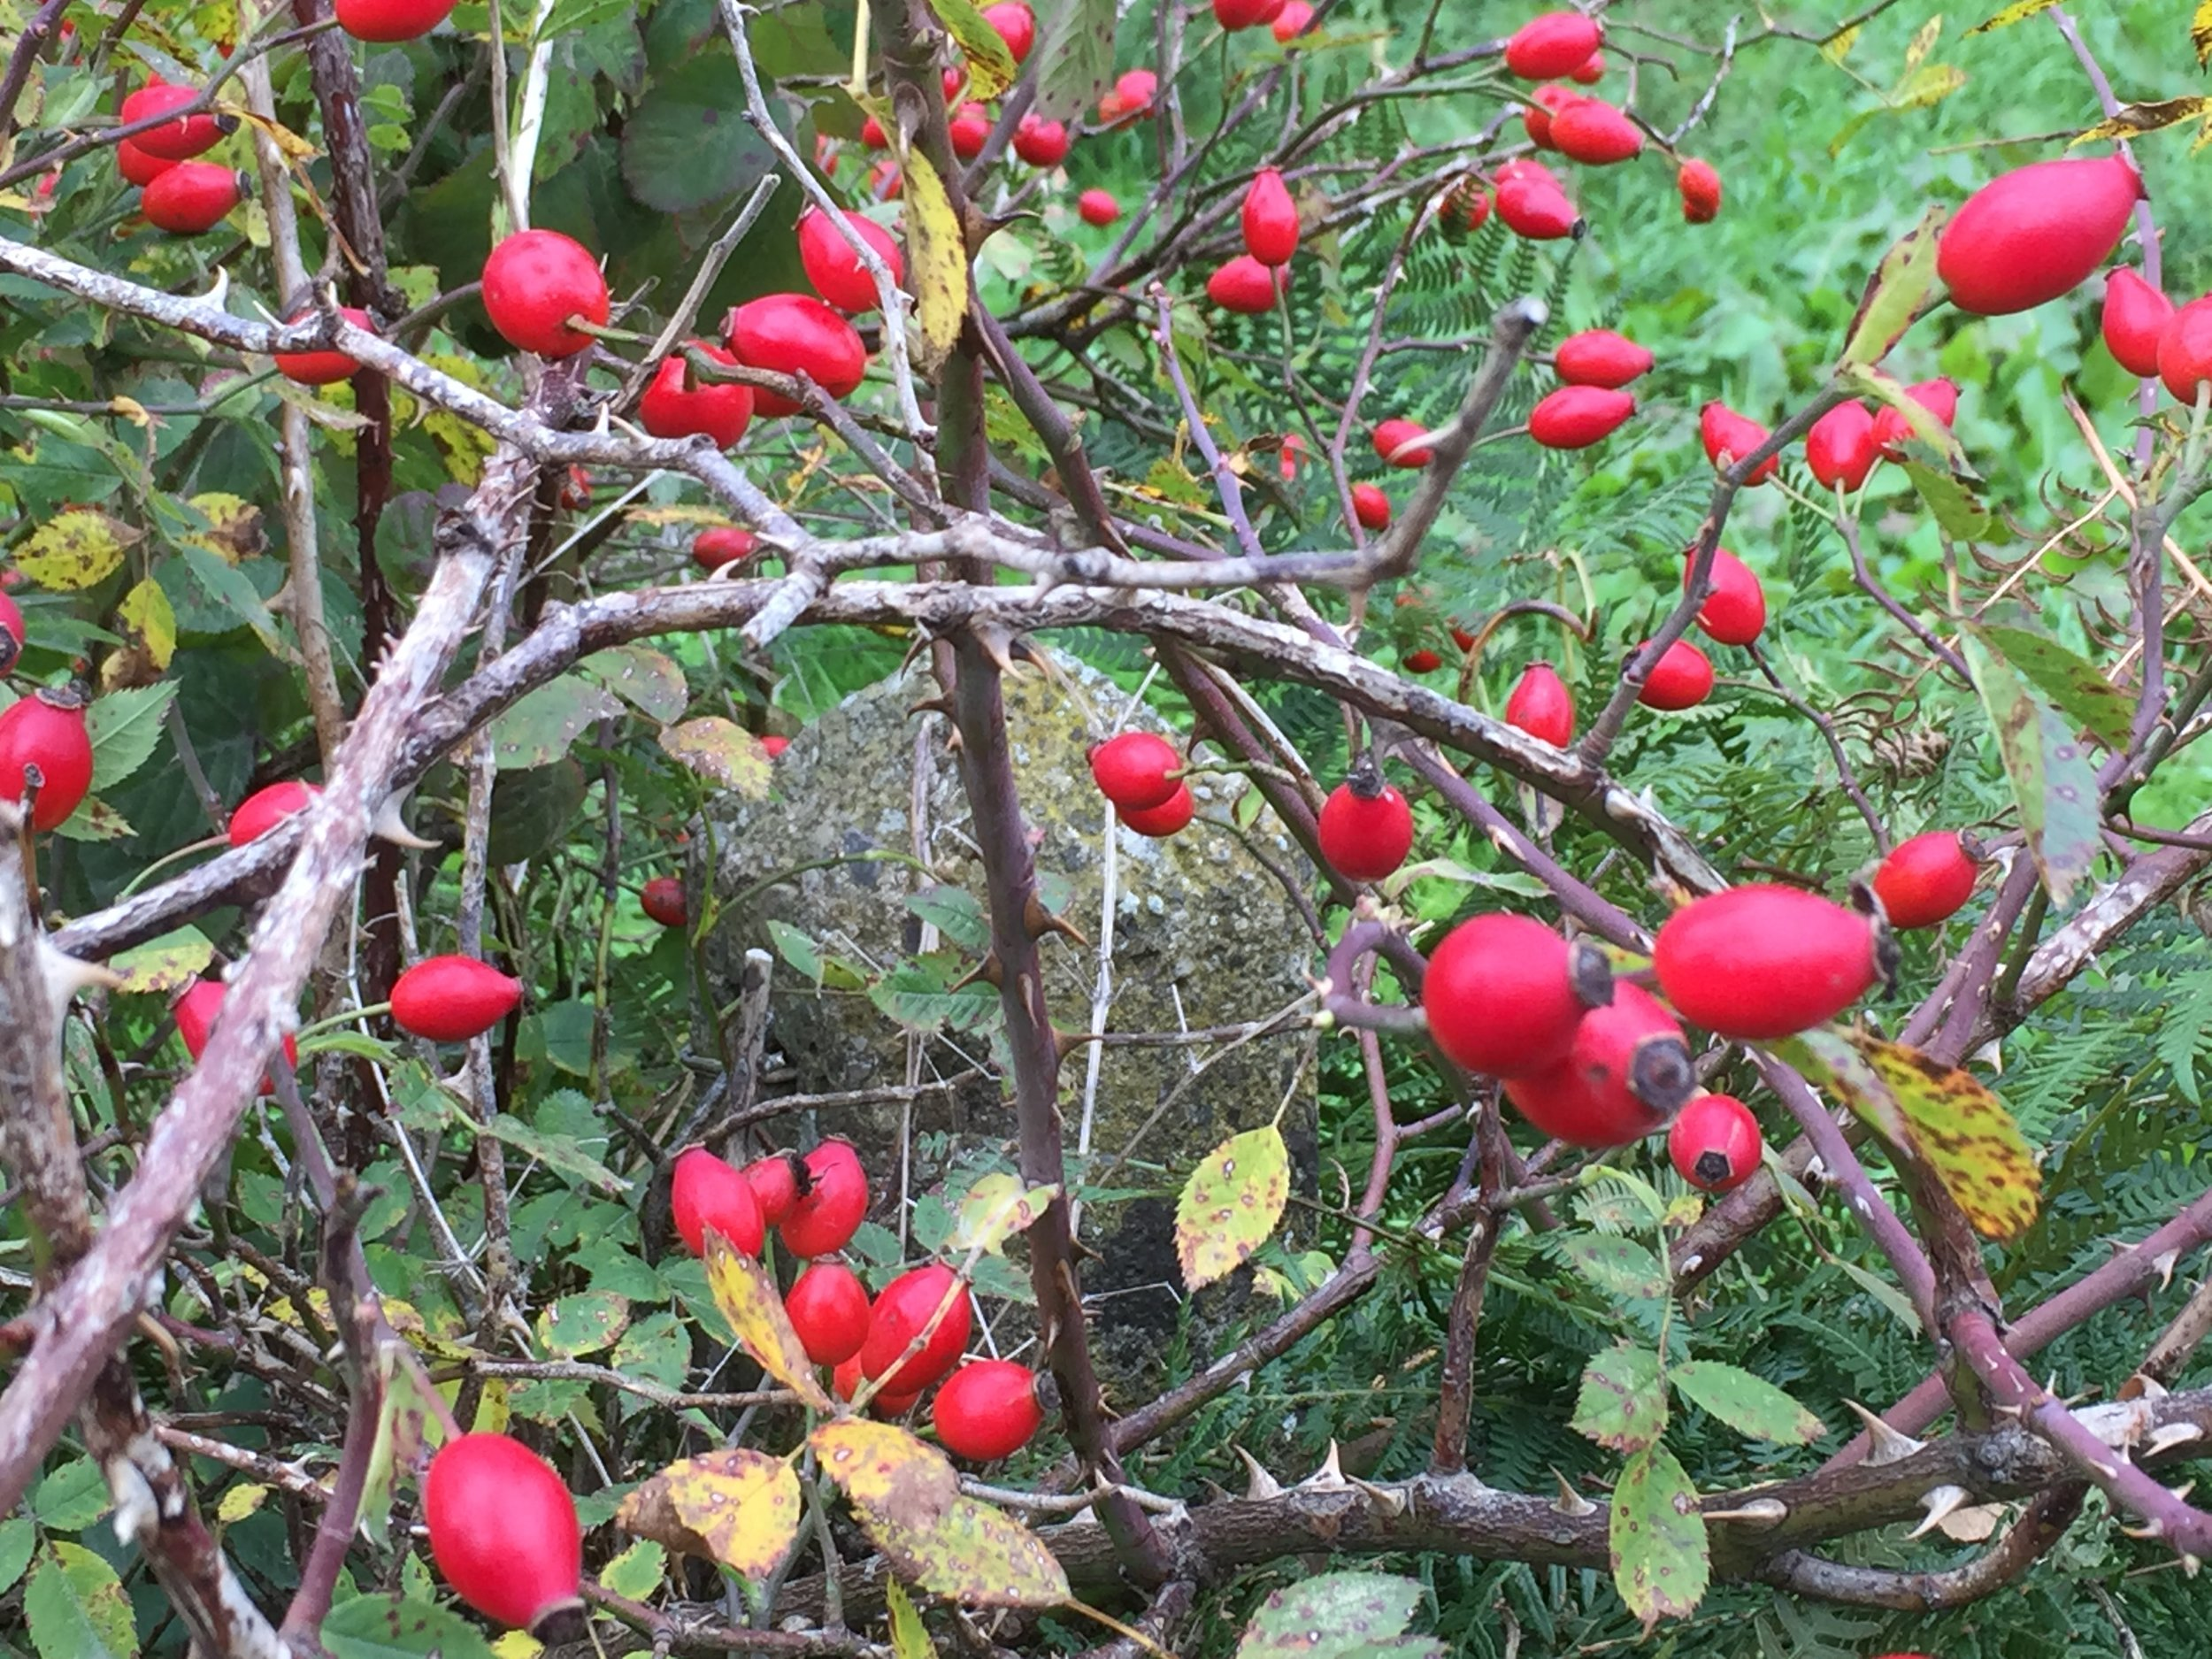 Vivid orange-red rose hips in hedgerows after a long warm summer. Rose hip syrup is supposed to be a good source of Vitamin C and was made in Victorian times.